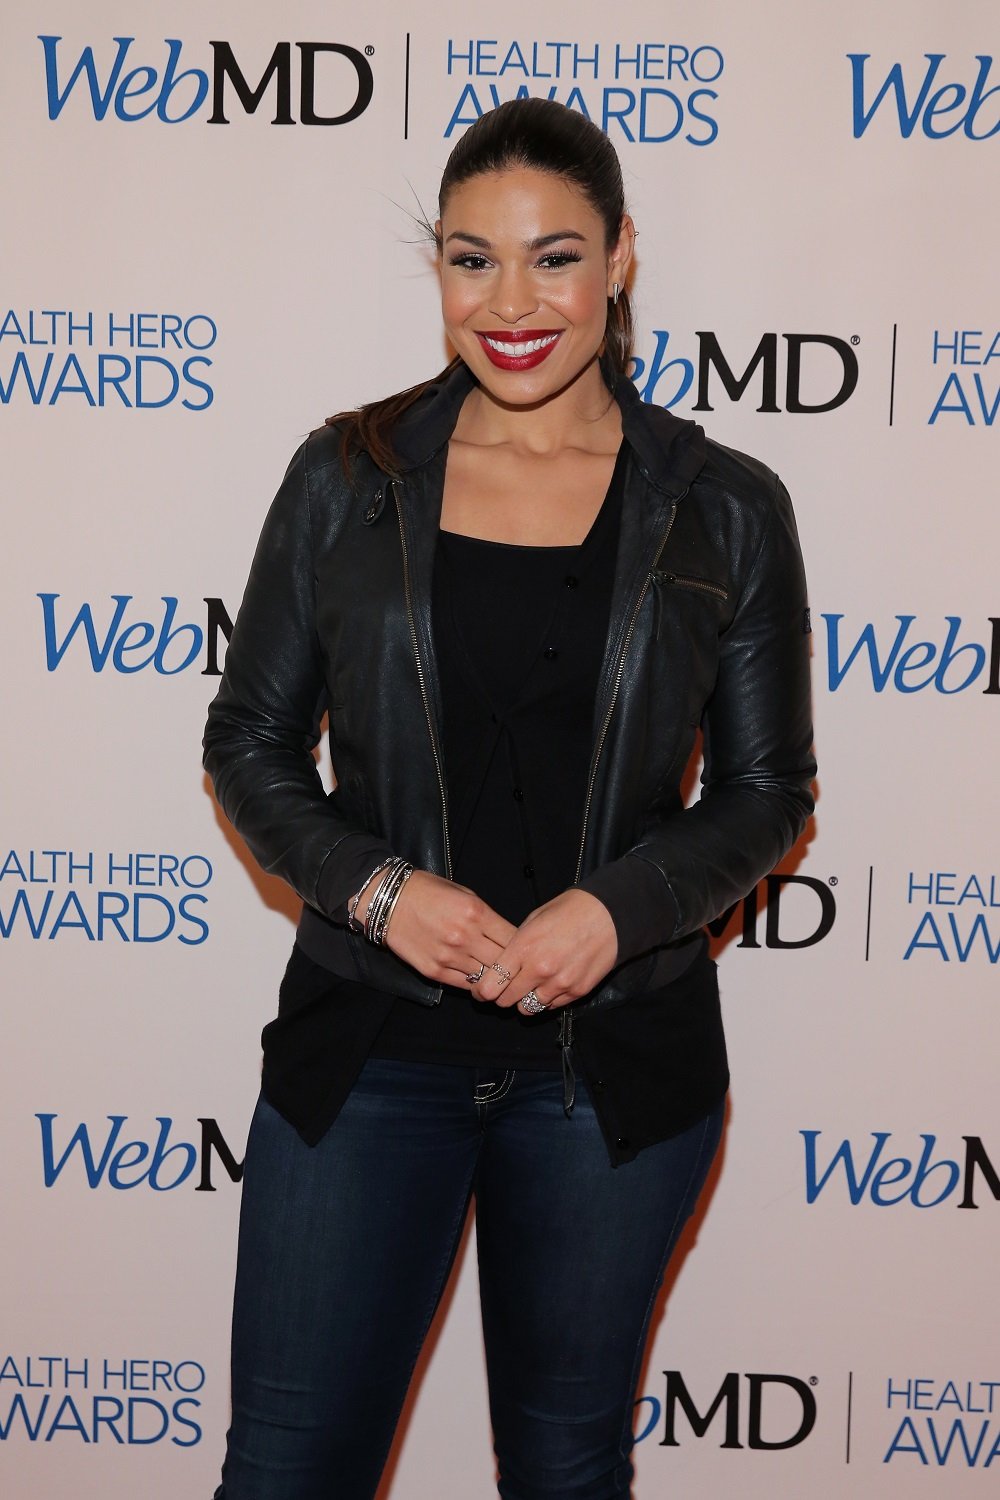 NEW YORK, NY - NOVEMBER 06: Musician Jordin Sparks attends the 2014 Health Hero Awards hosted by WebMD at Times Center on November 6, 2014 in New York City.  (Photo by Neilson Barnard/Getty Images for WebMD)